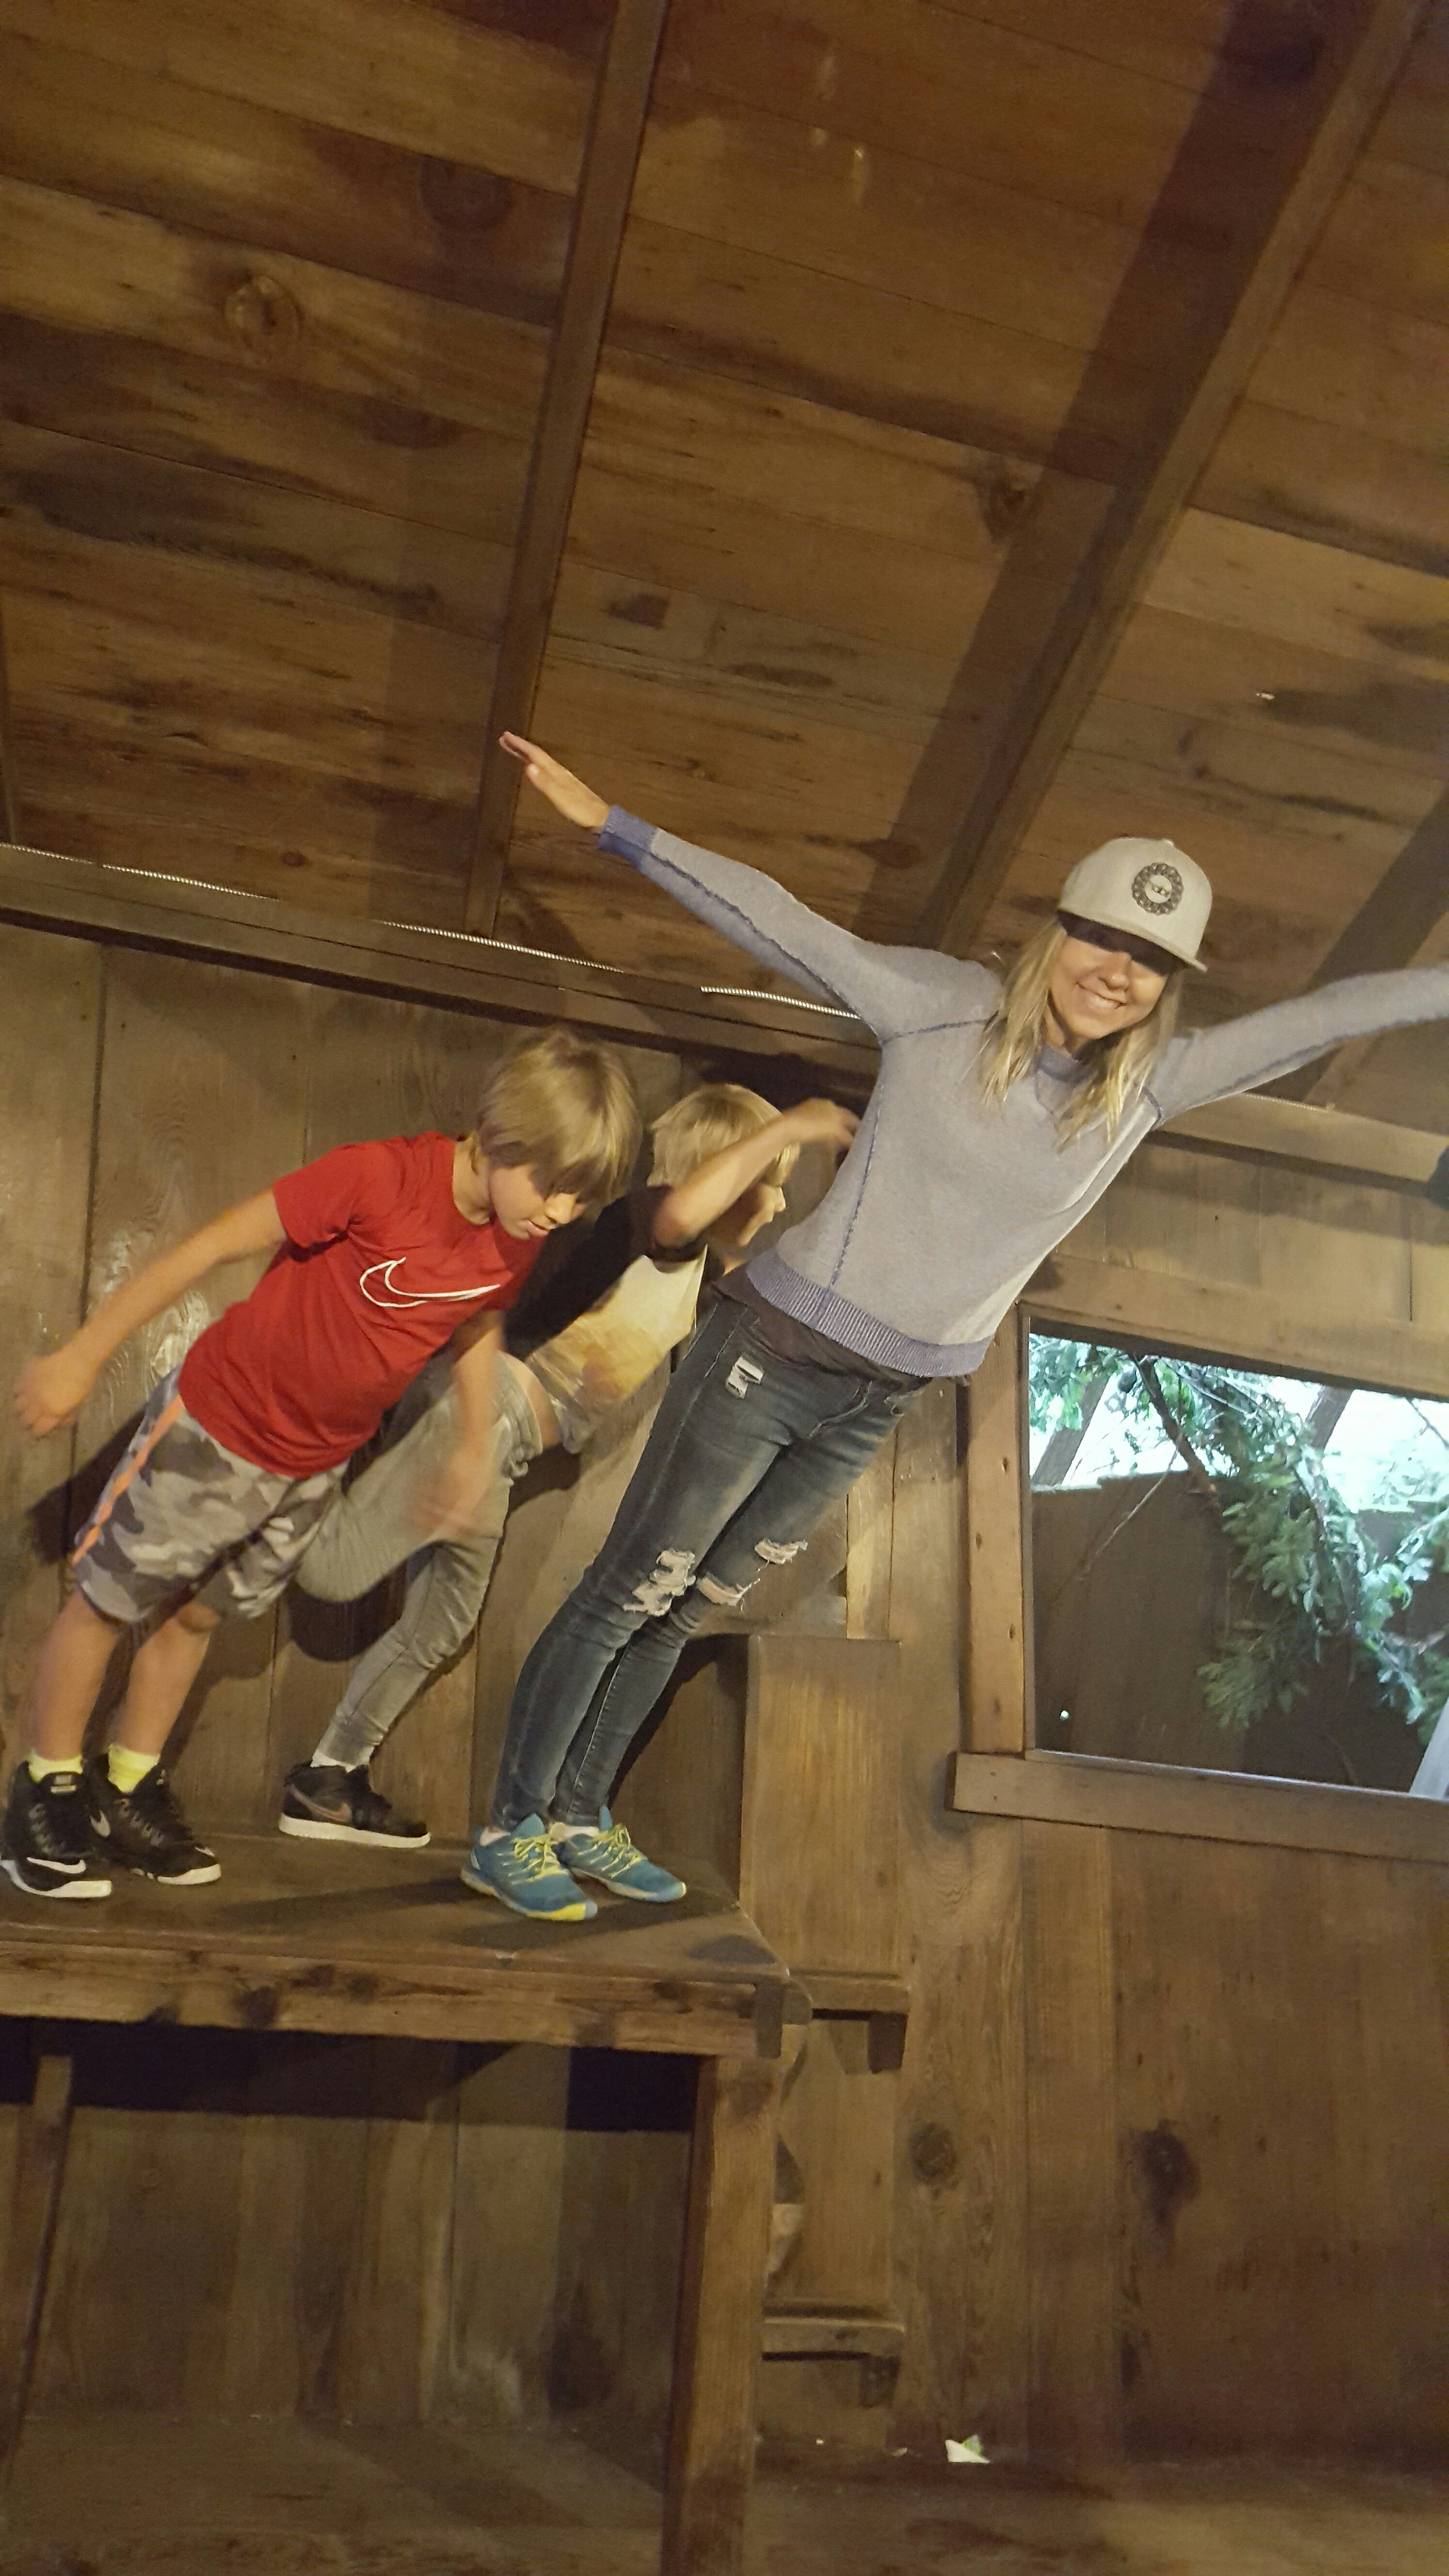 123ed694885 Santa Cruz Mystery Spot... Is It Real?! - What a Fabulous Day